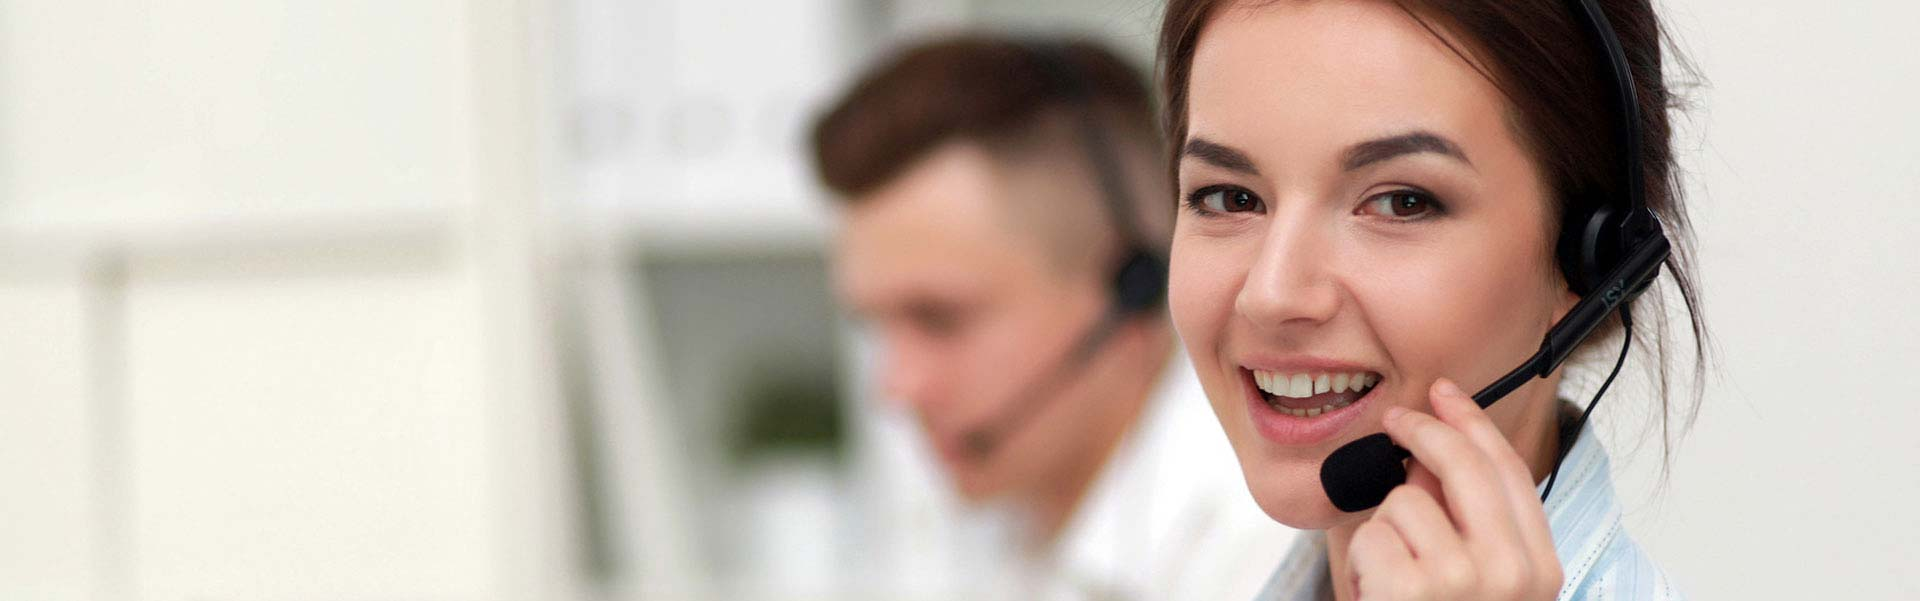 Frau in Callcenter telefoniert mit Headset